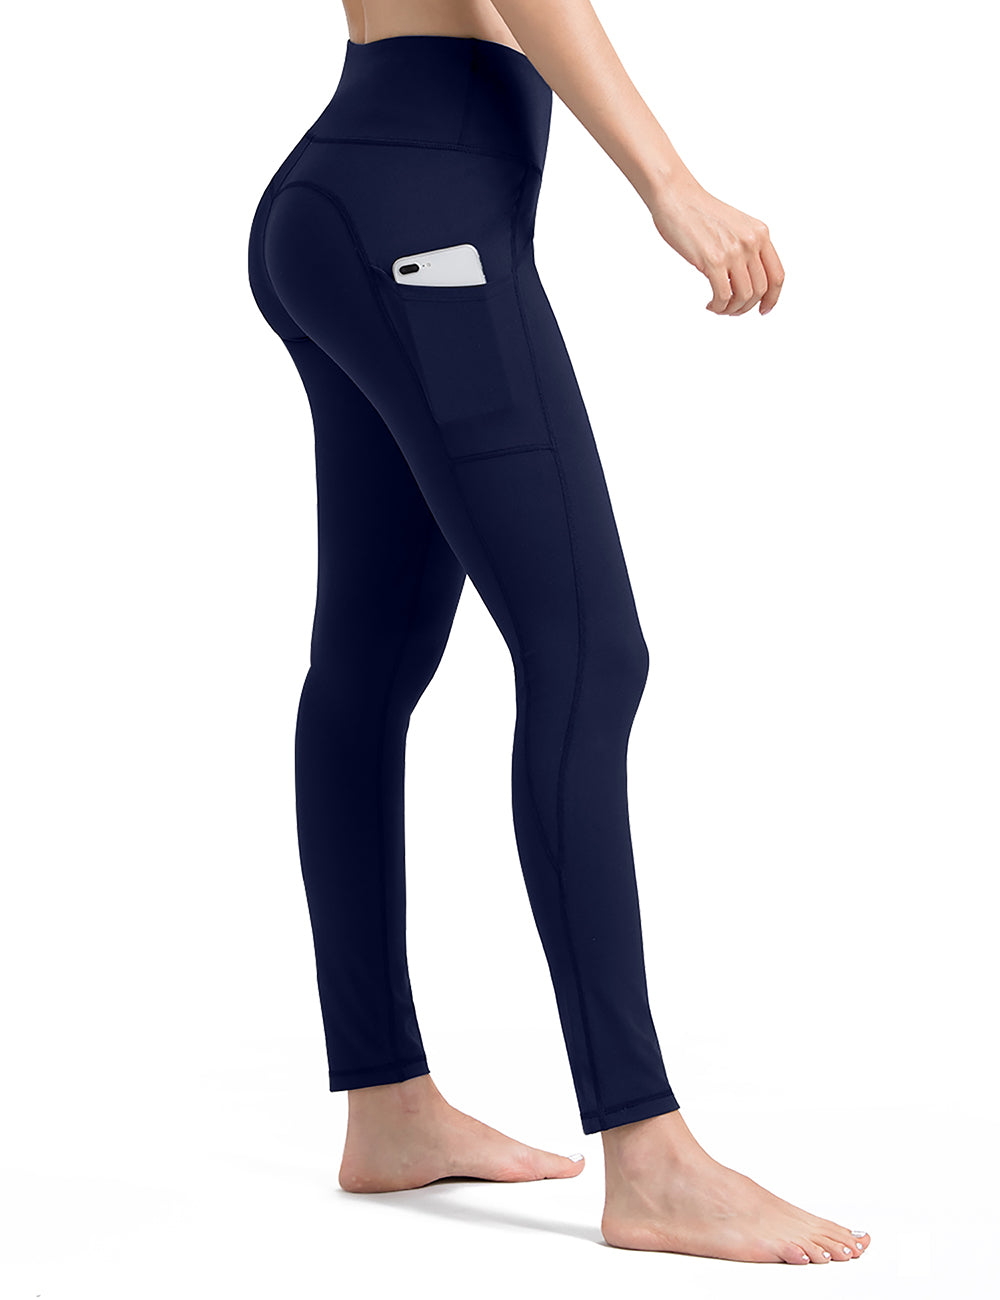 Royal Blue Women's Yoga Leggings - ALONGFIT